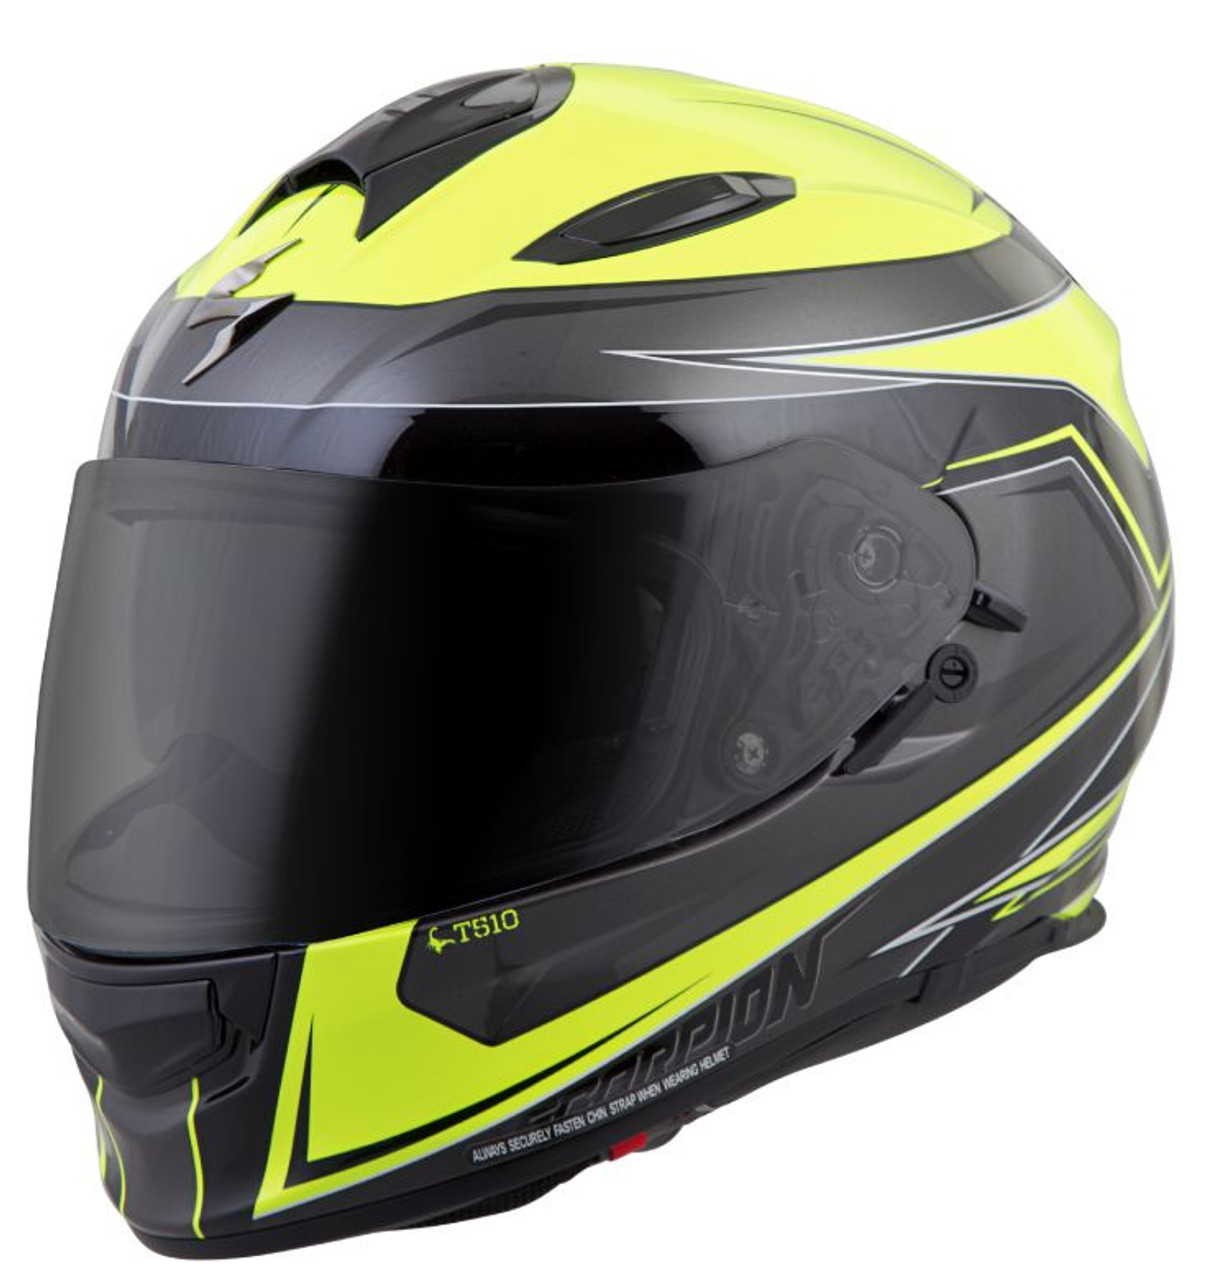 Scorpion EXO-T510 Cipher Motorcycle Helmet Black//Gray